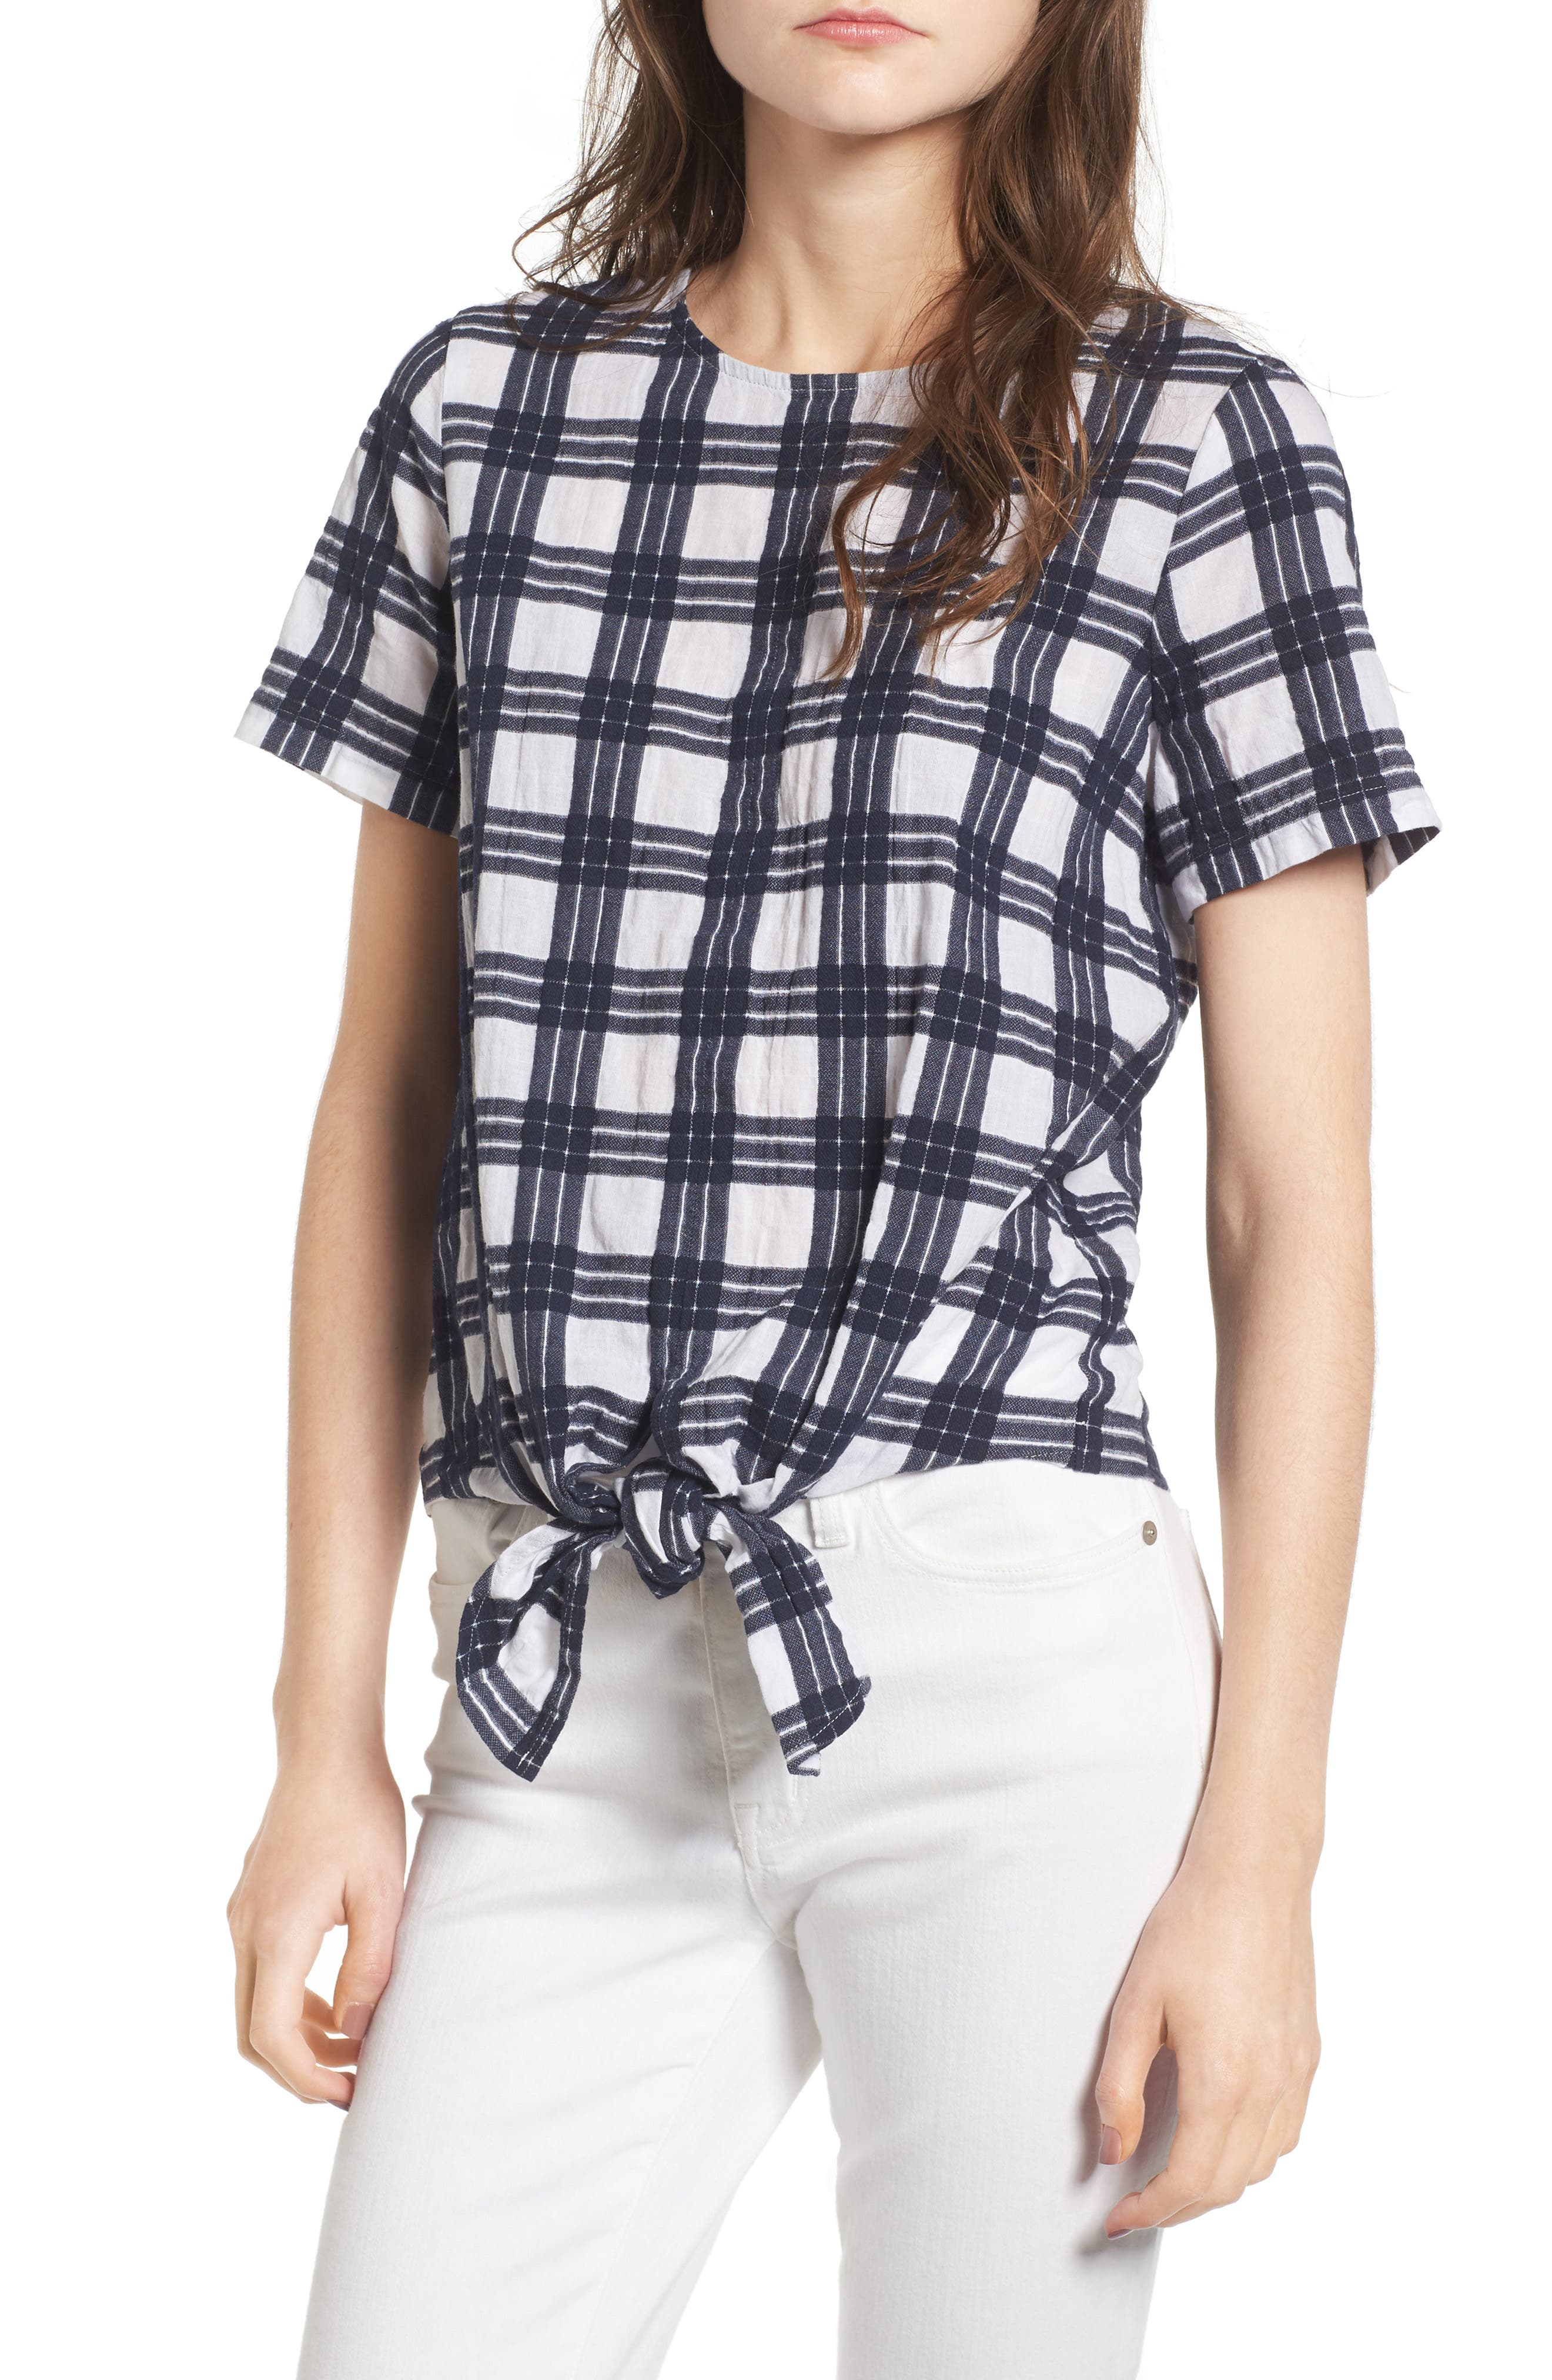 Alternate Image 1 Selected - Madewell Plaid Tie Front Blouse